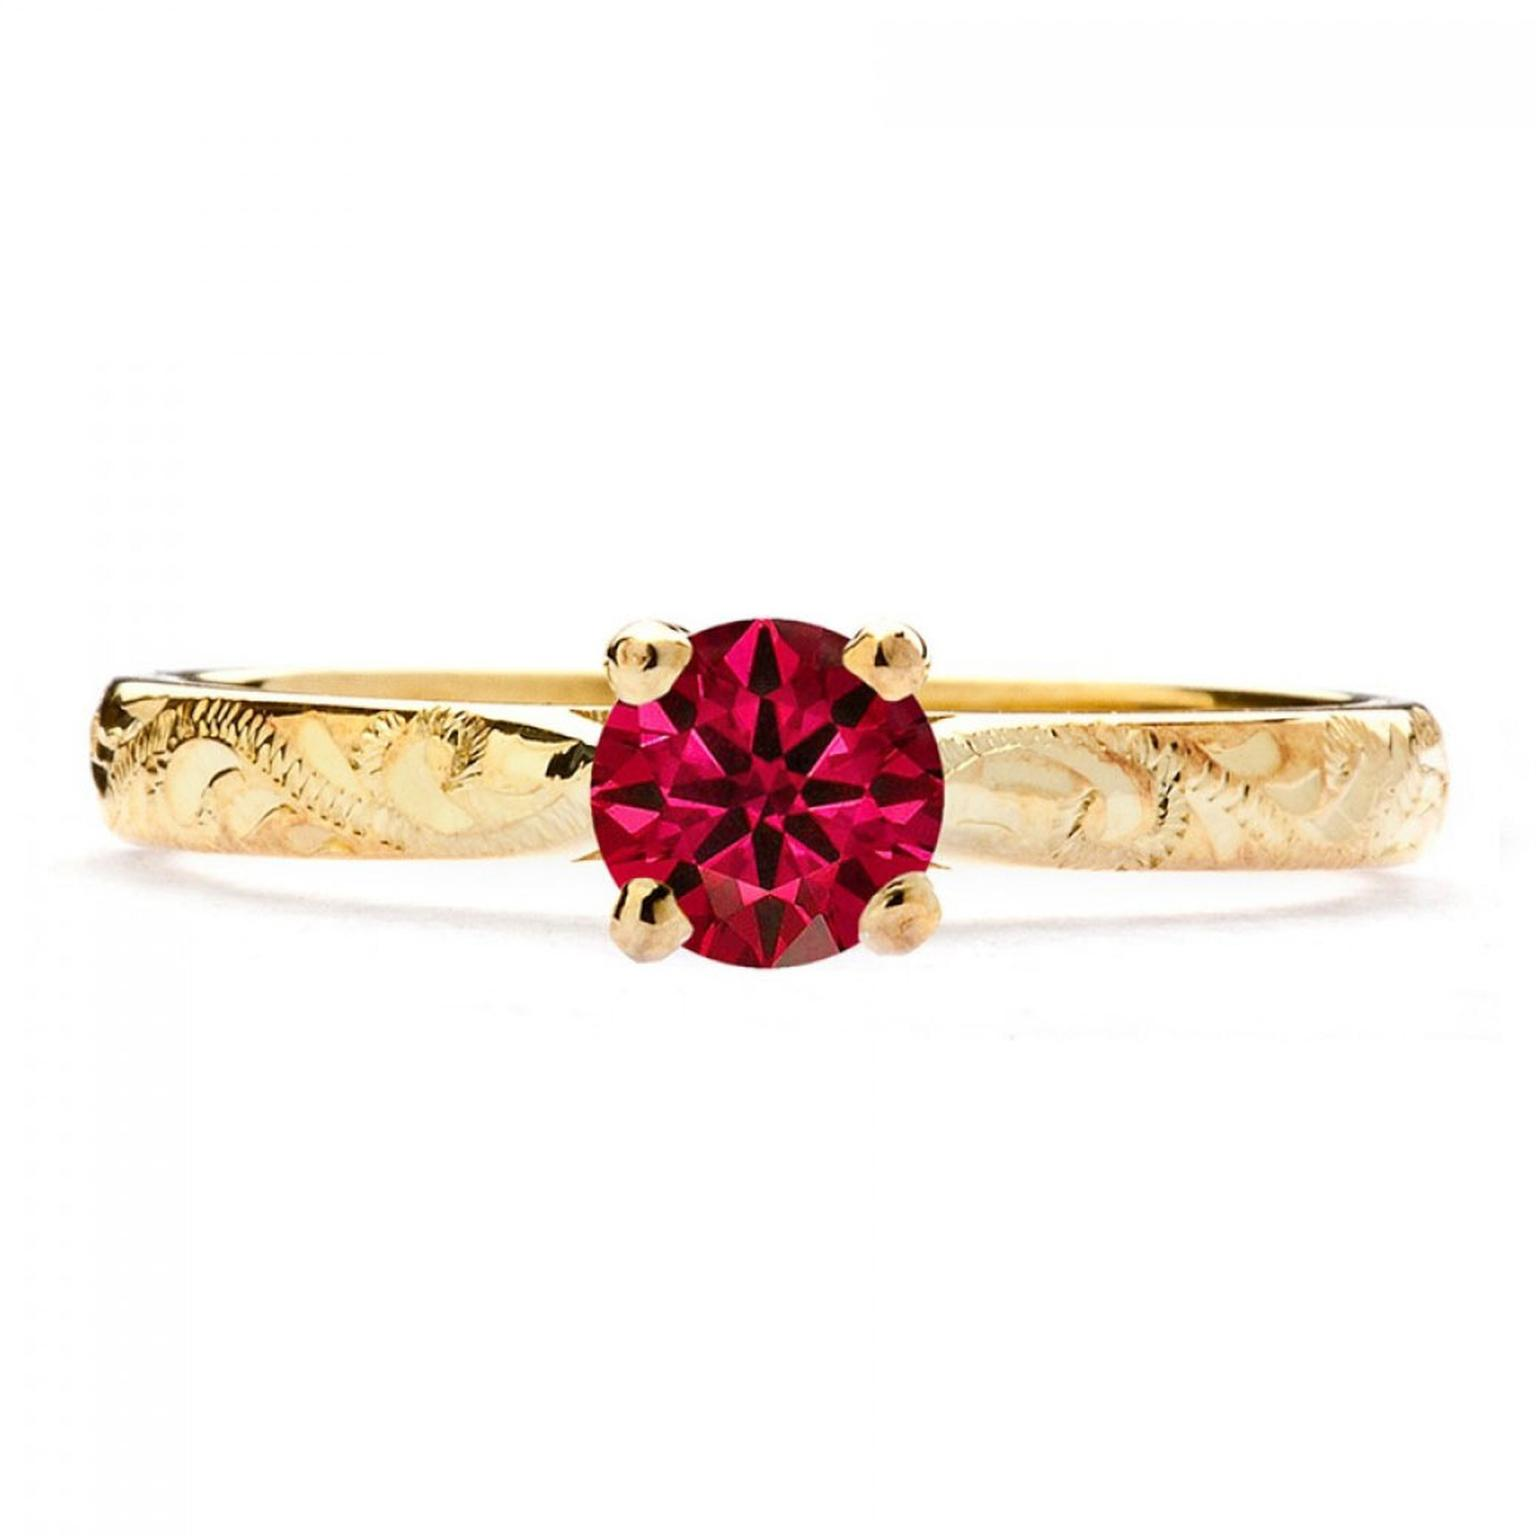 Arabel Lebrusan Athena ruby engagement ring